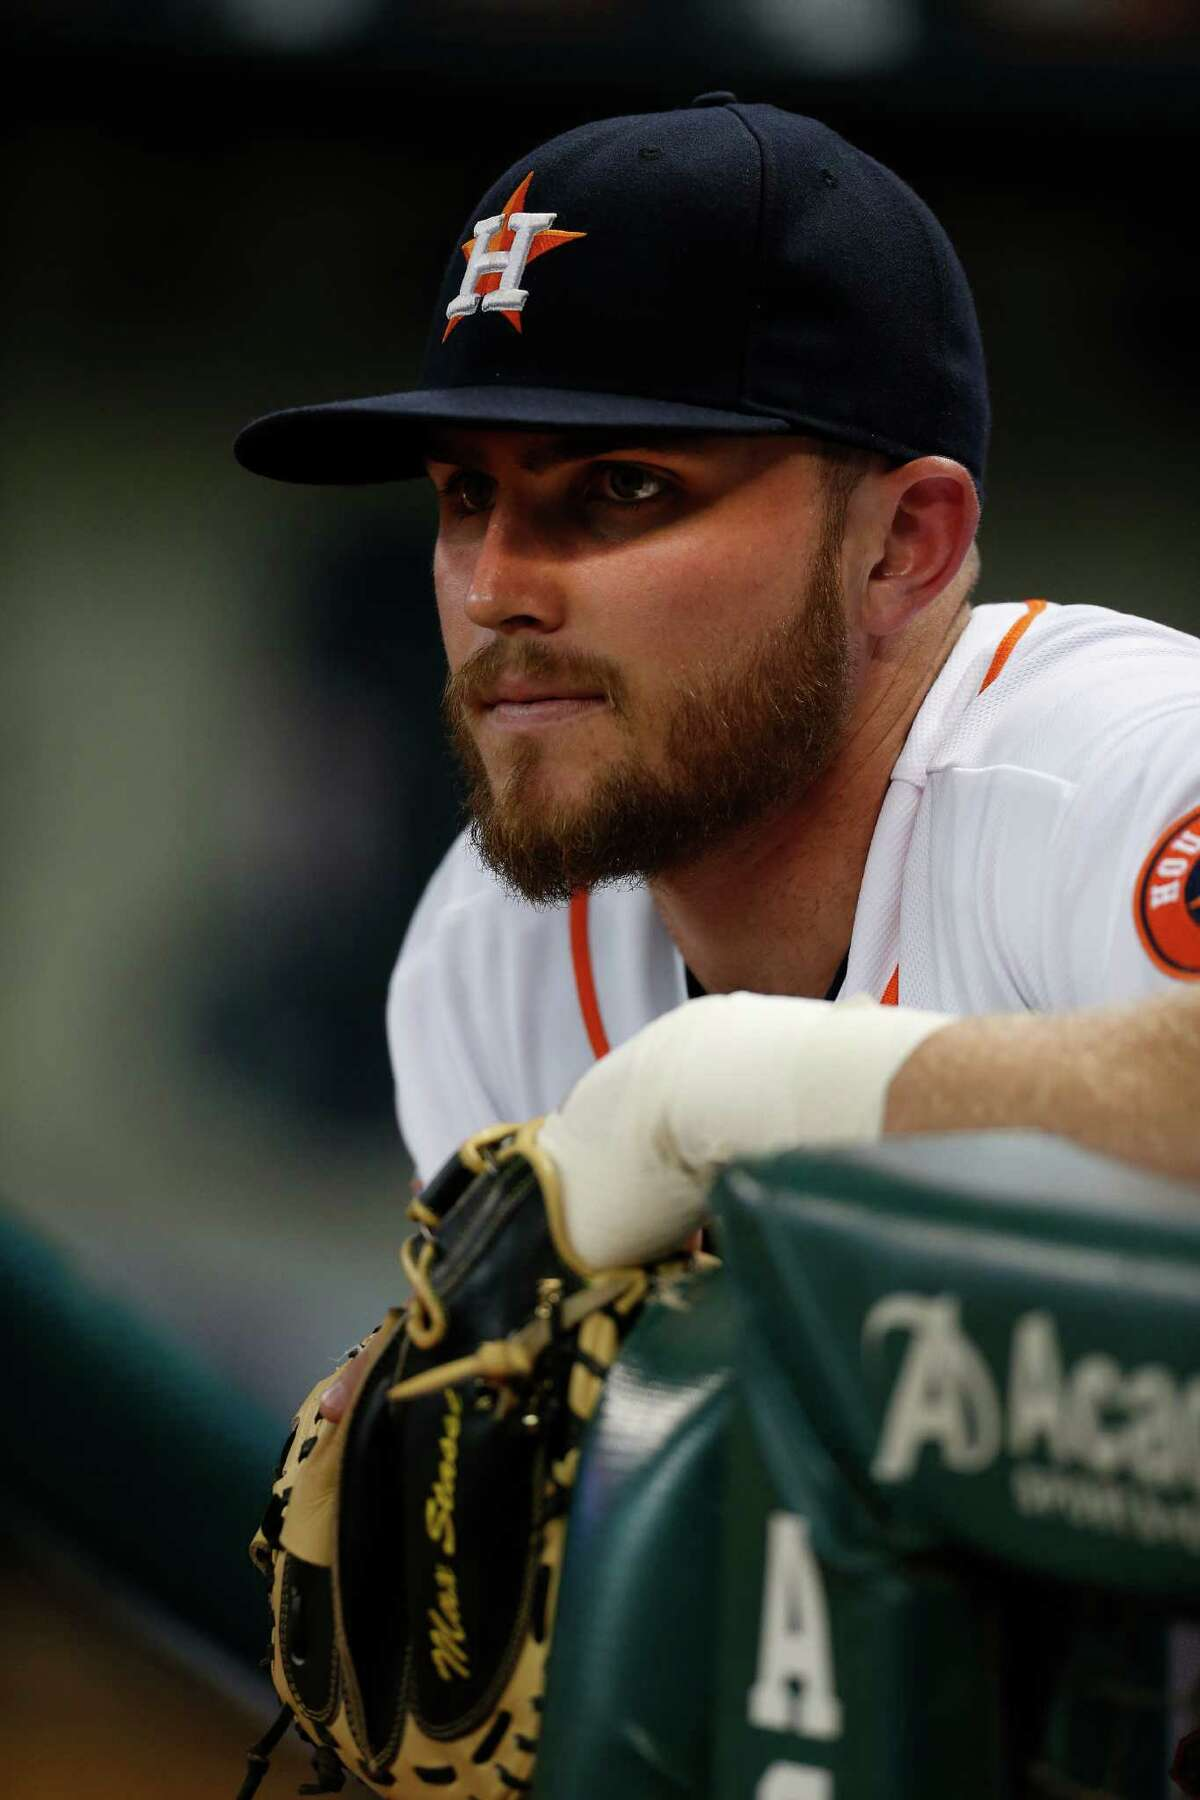 Houston Astros catcher Max Stassi (12) before the start of the first inning of an MLB game at Minute Maid Park on Monday, Sept. 21, 2015. ( Karen Warren / Houston Chronicle )